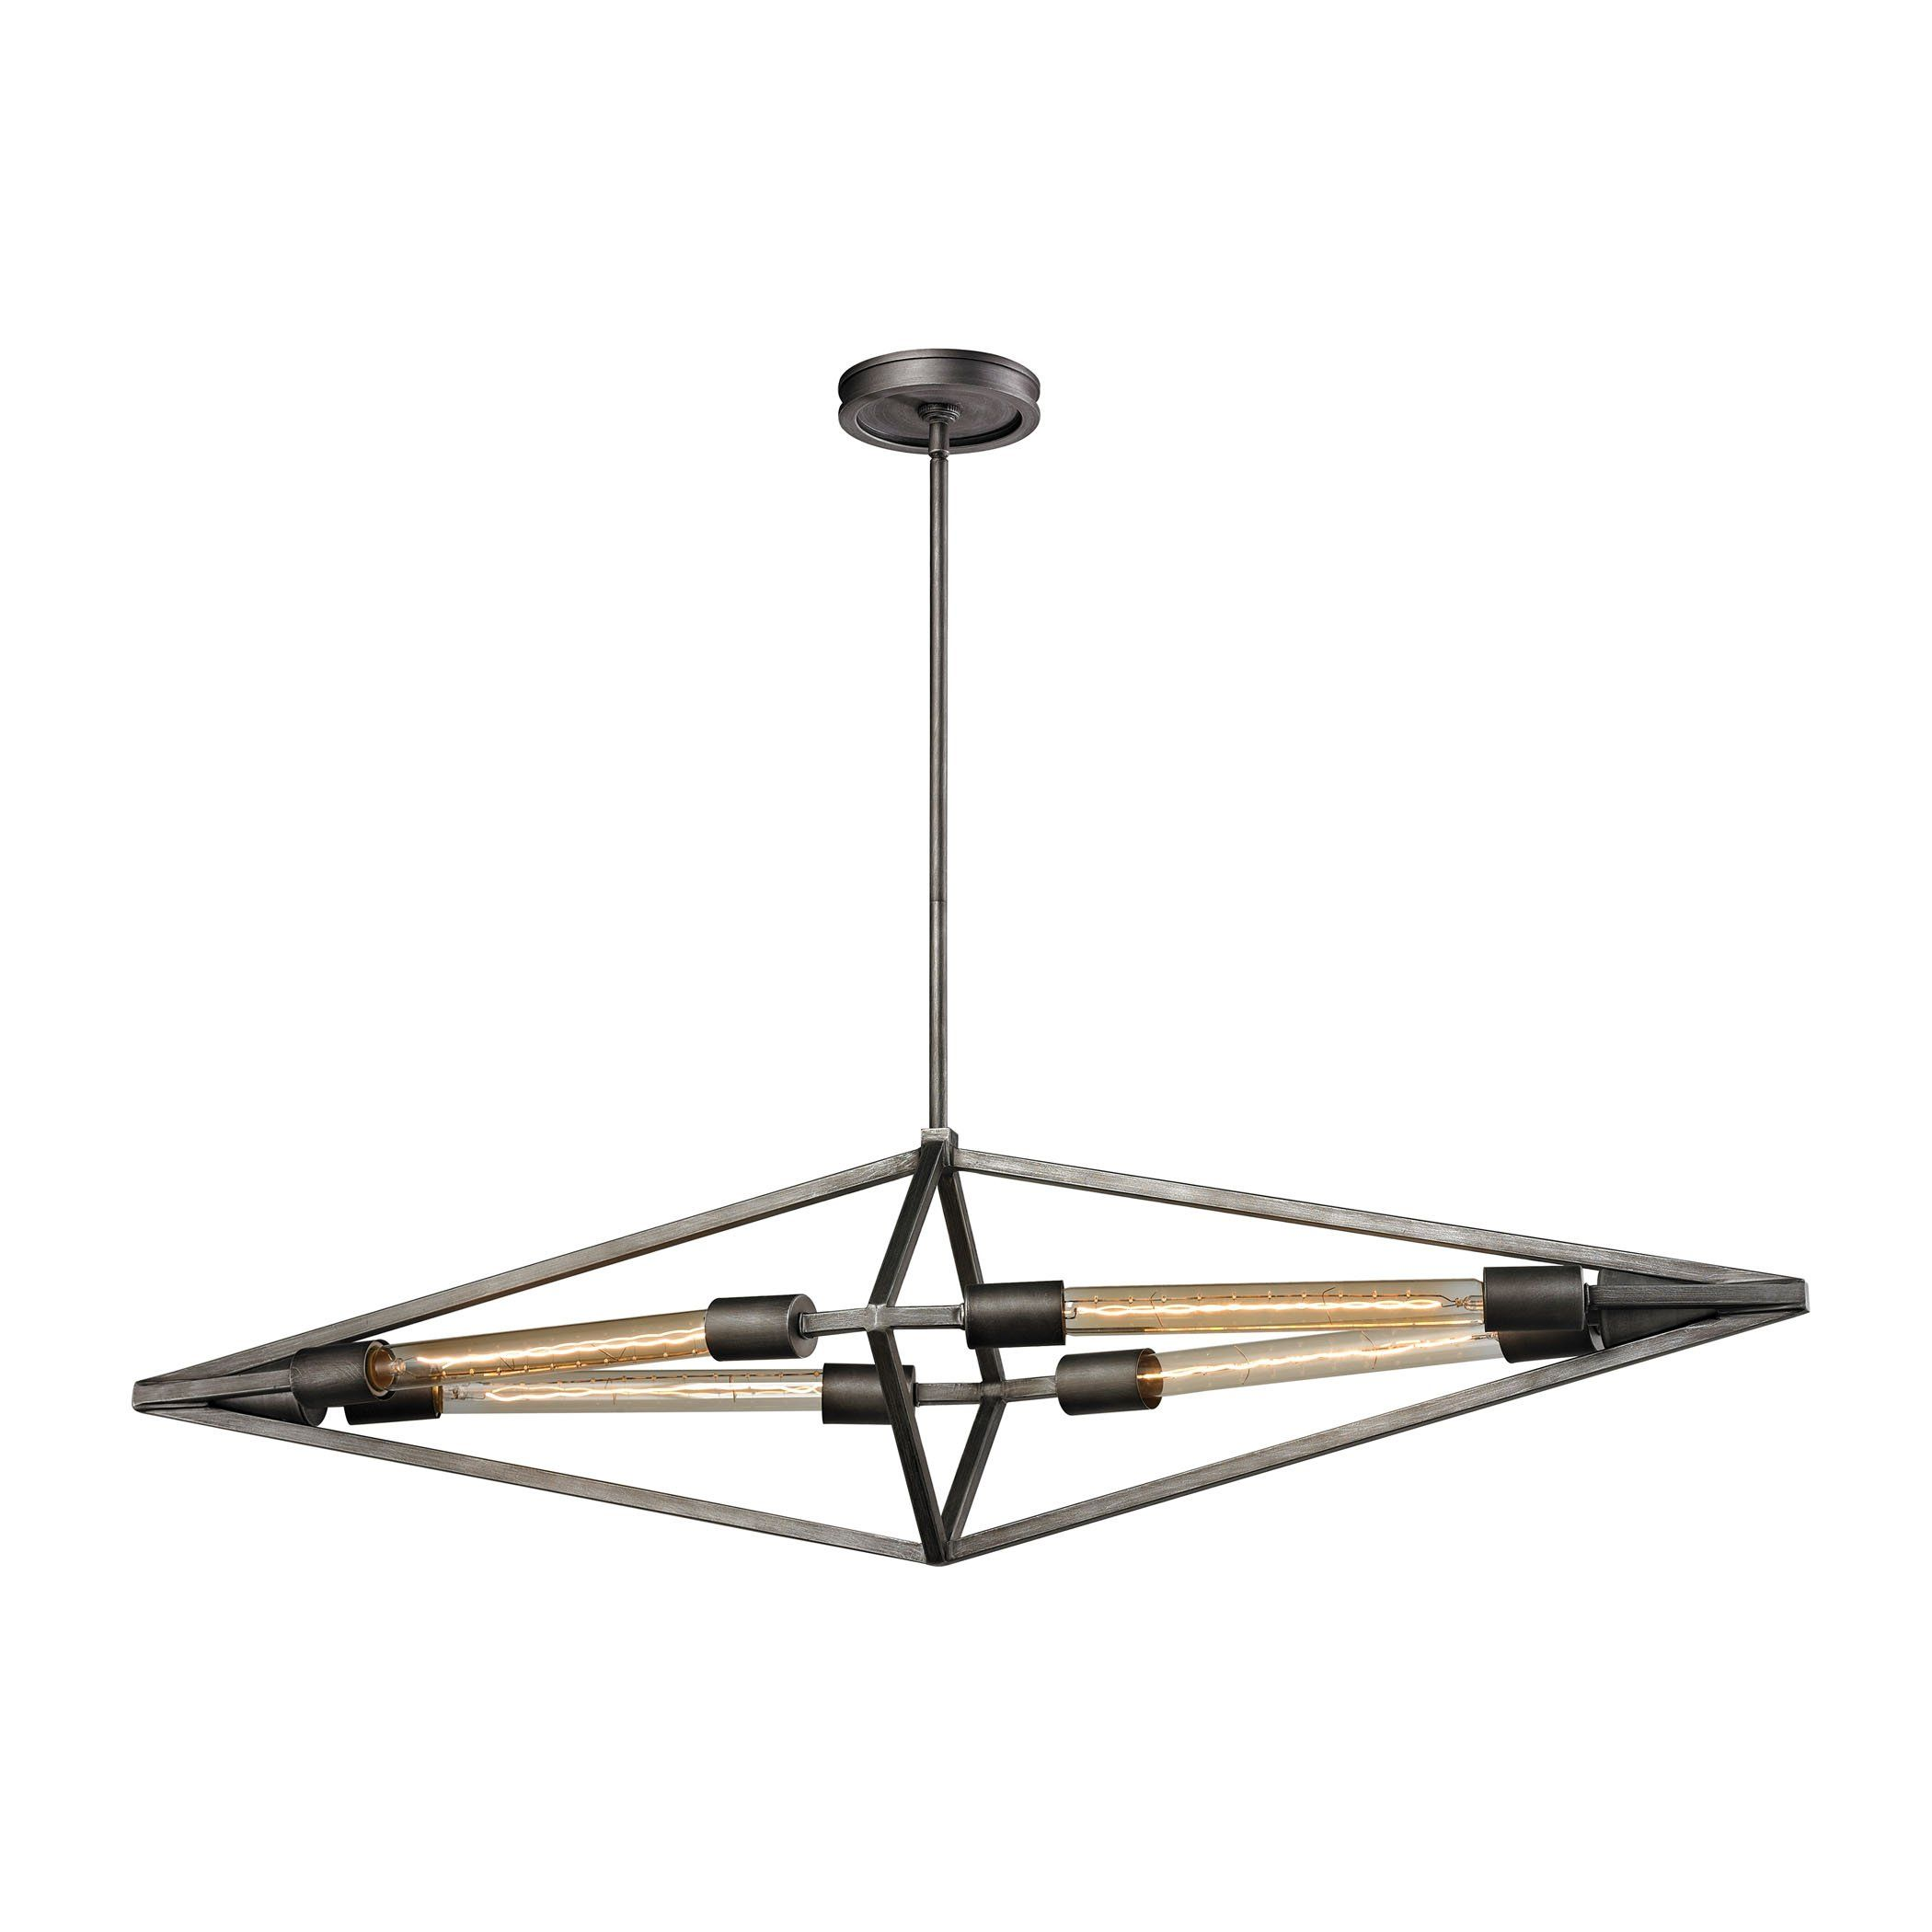 Laboratory 4 Light Chandelier In Weathered Zinc - Bulbs Included 66893/4B